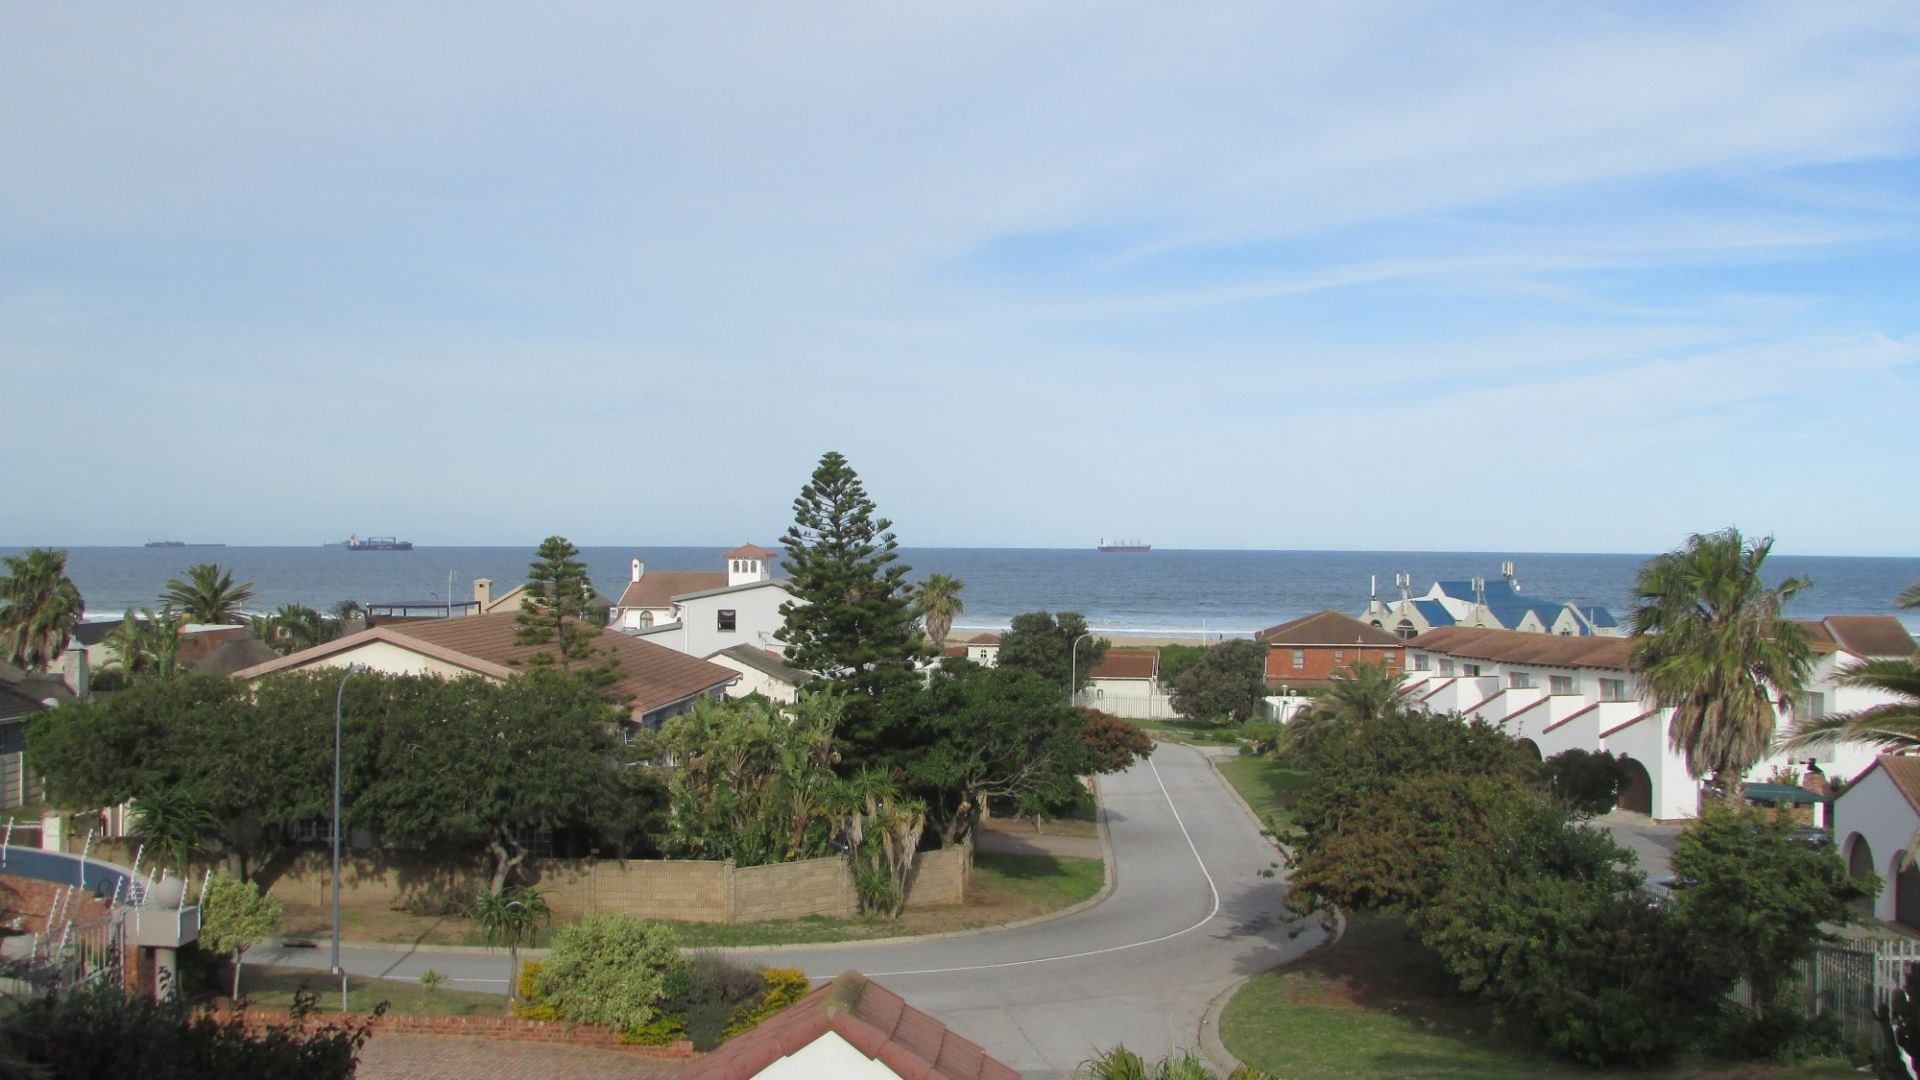 5 Bedroom House for Sale in Bluewater Bay